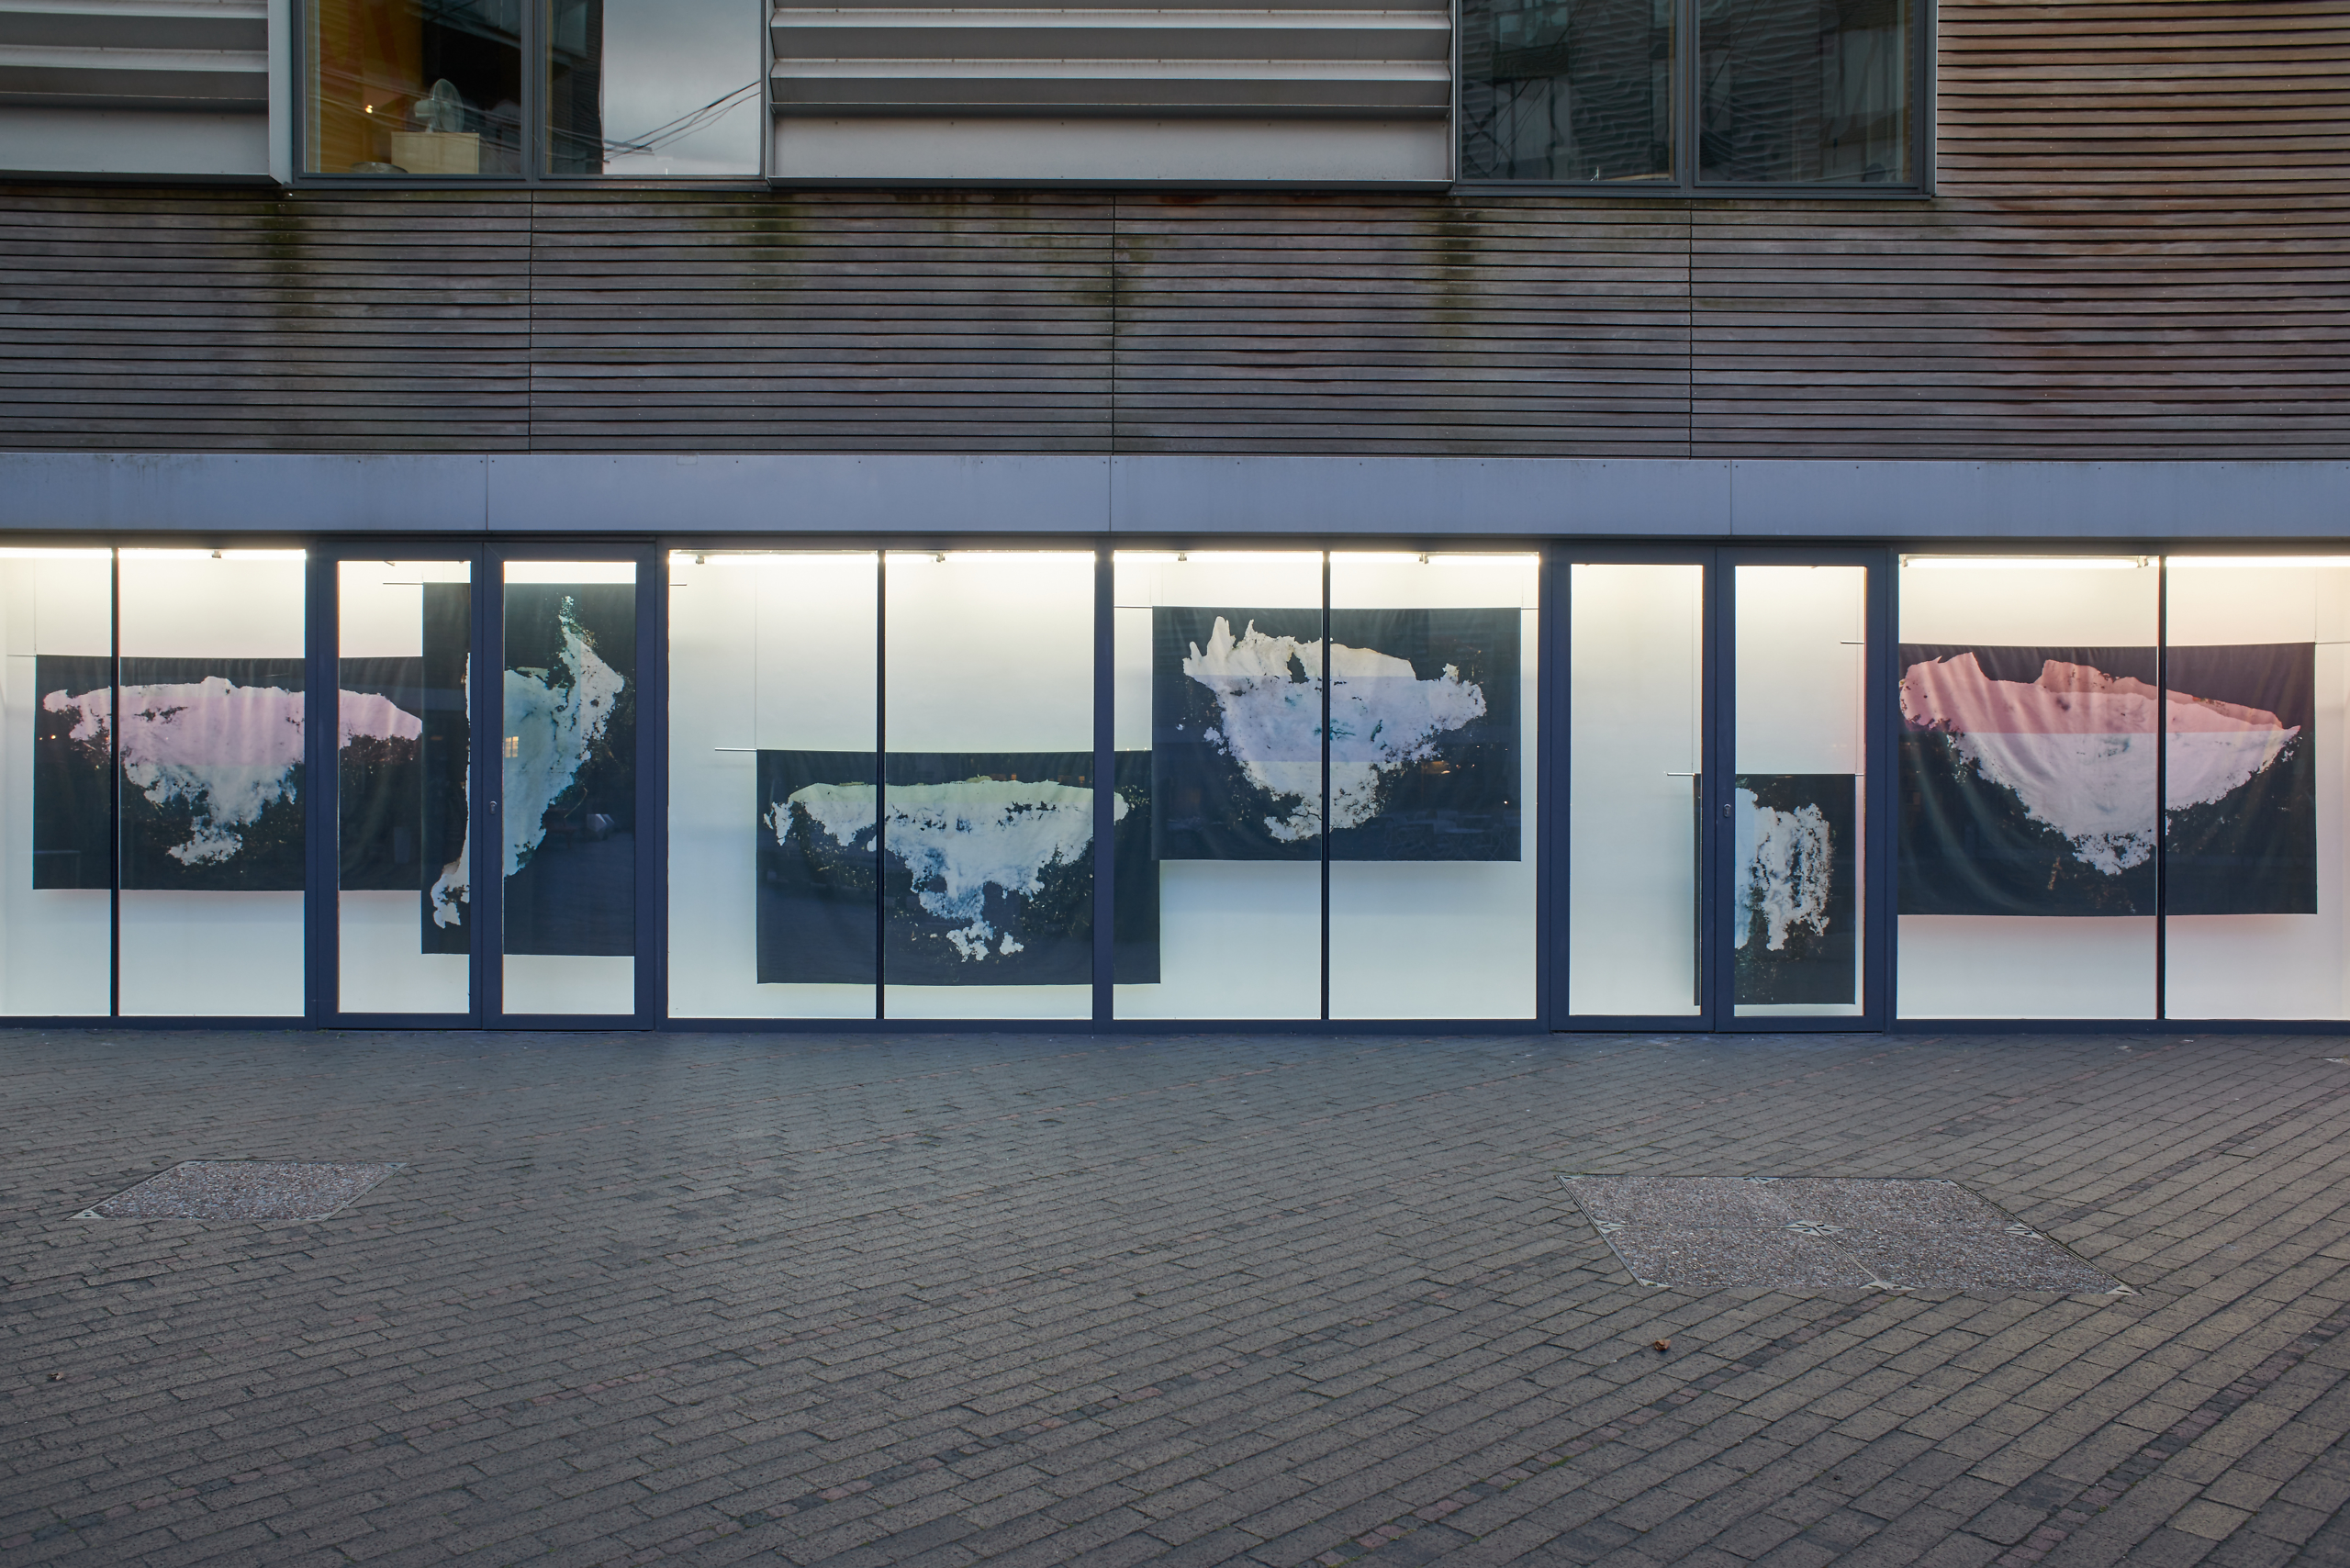 Sarah Burger, New Continents, Light Lines, 2017. Installation View. VITRINE, London. Photographer : Jonathan Basset.